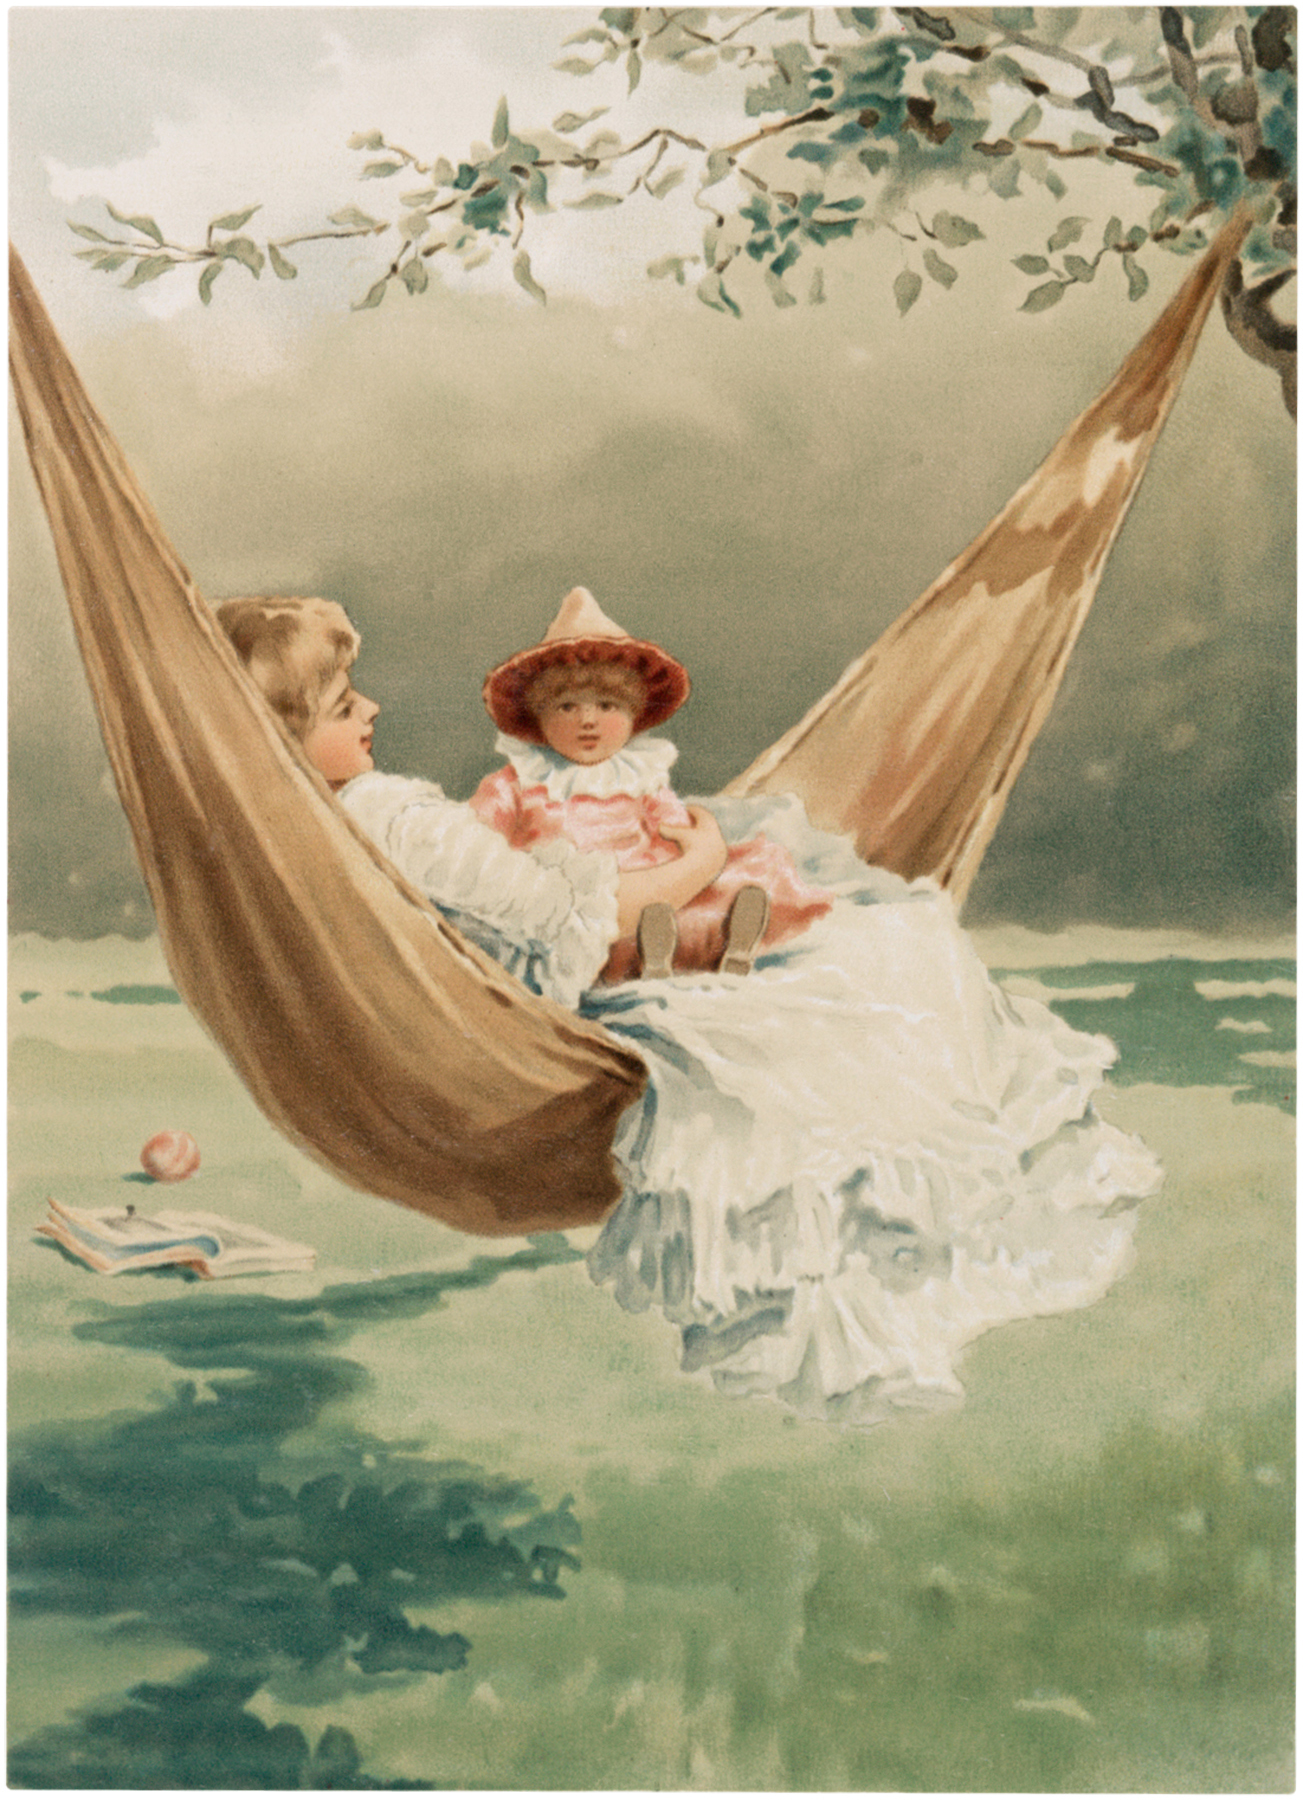 Mother and Child Hammock Image